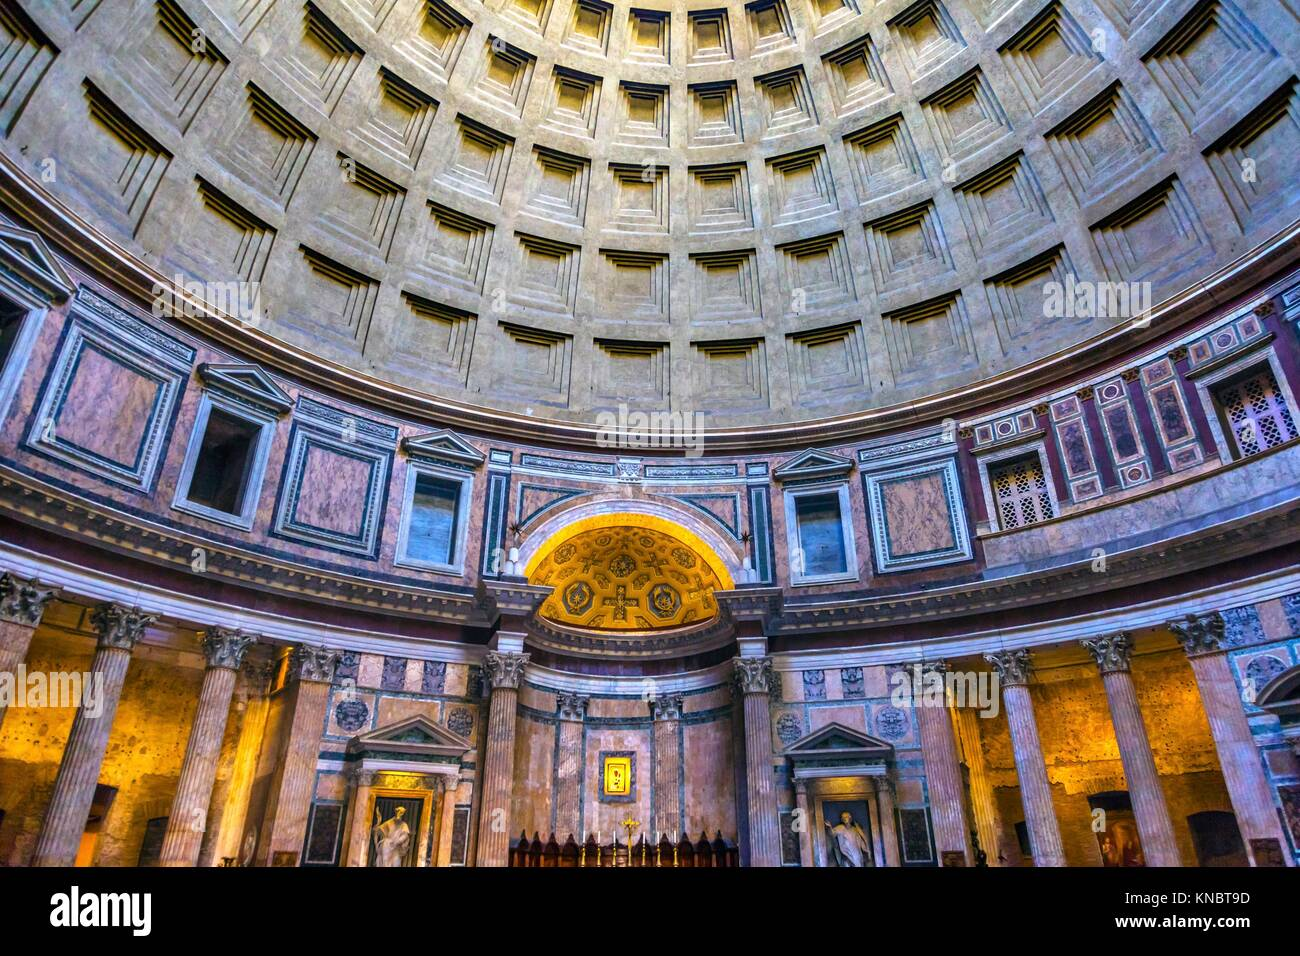 Dome Pillars Altar Pantheon Rome Italy Rebuilt by Hadrian in 118 to 125 ADthe Second Century Became oldest Roman - Stock Image